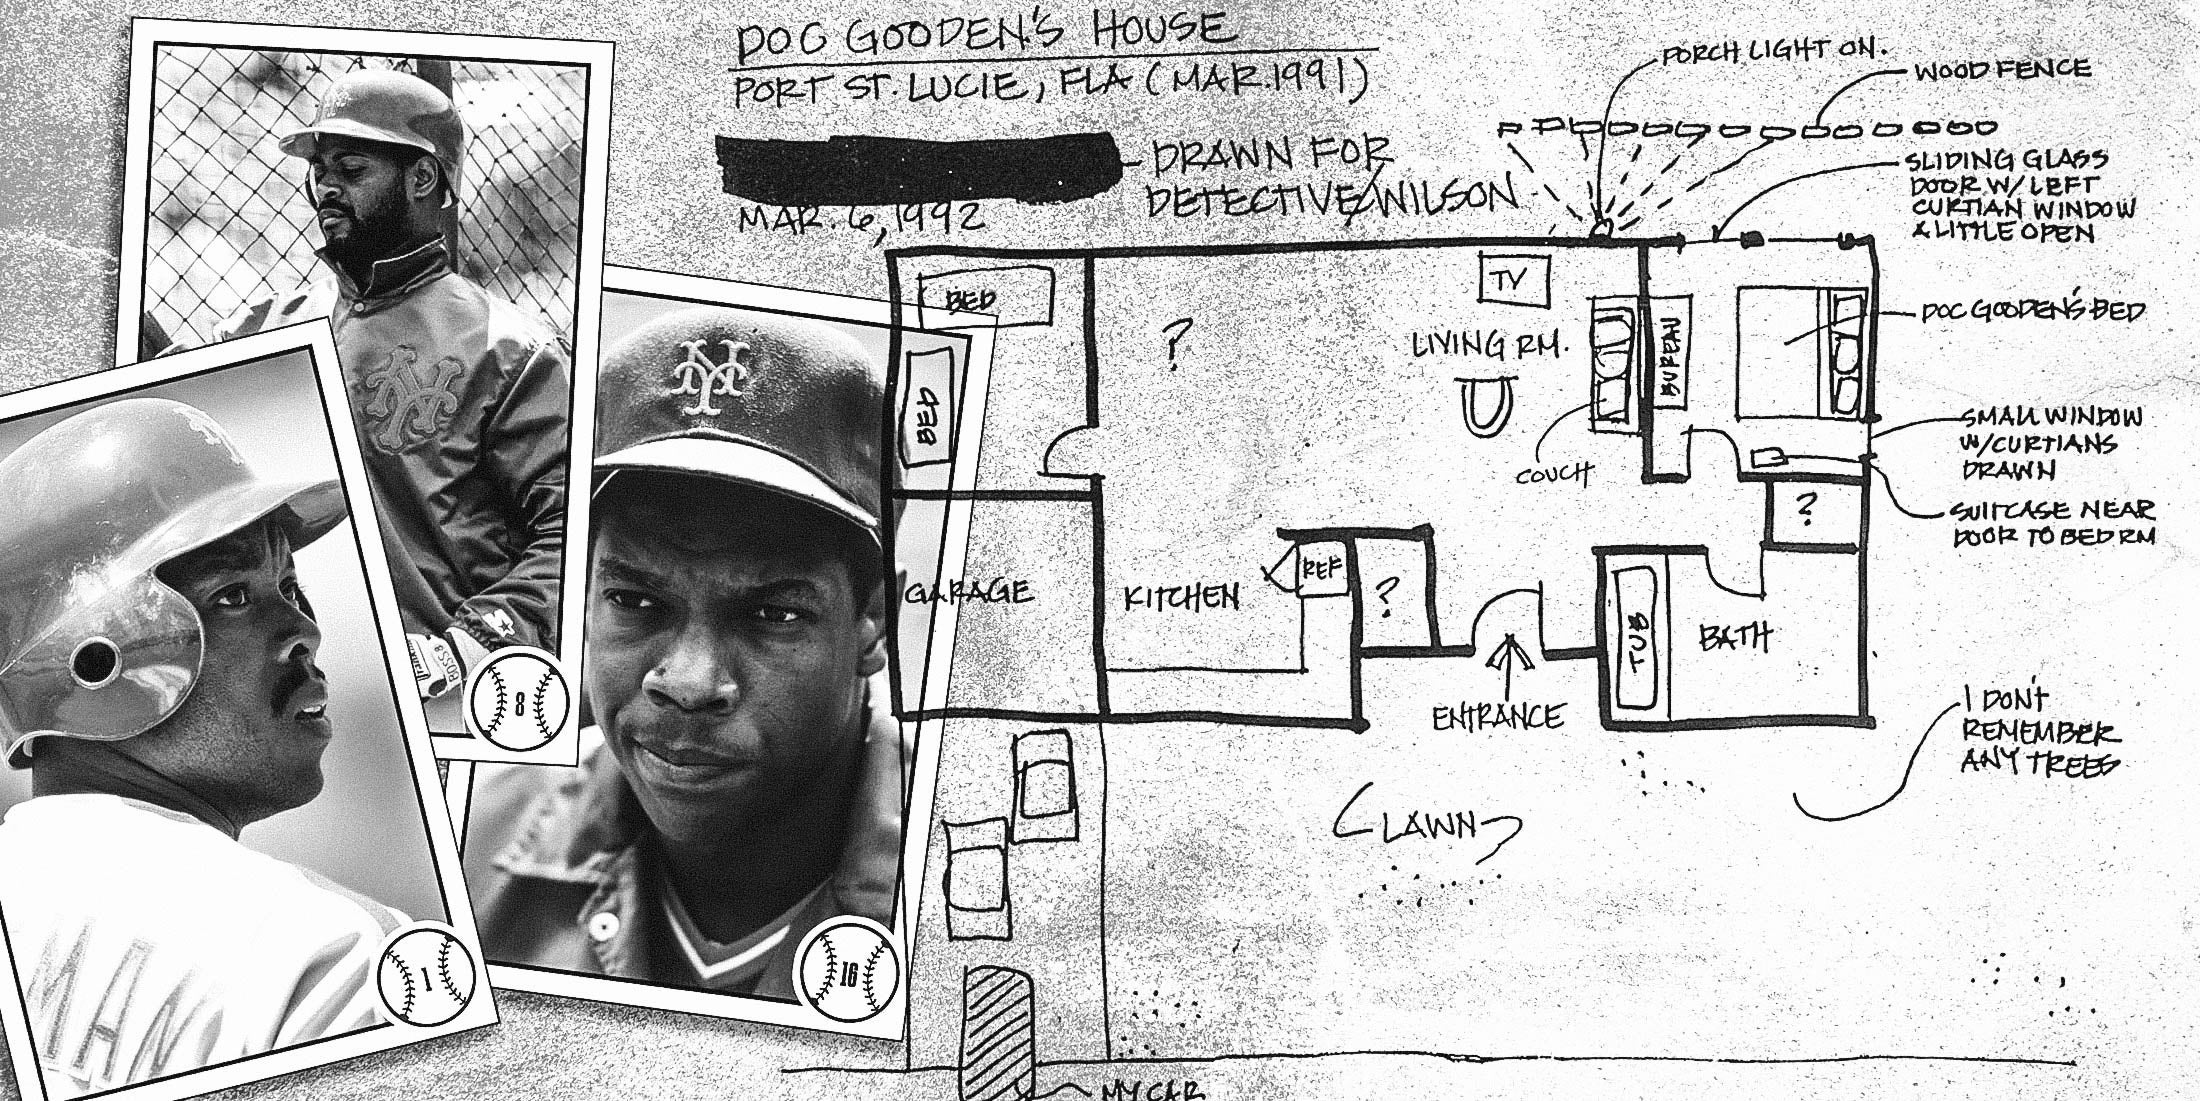 Photos of (from left) Vince Coleman, Daryl Boston, and Dwight Gooden and a sketch the accuser drew for police.